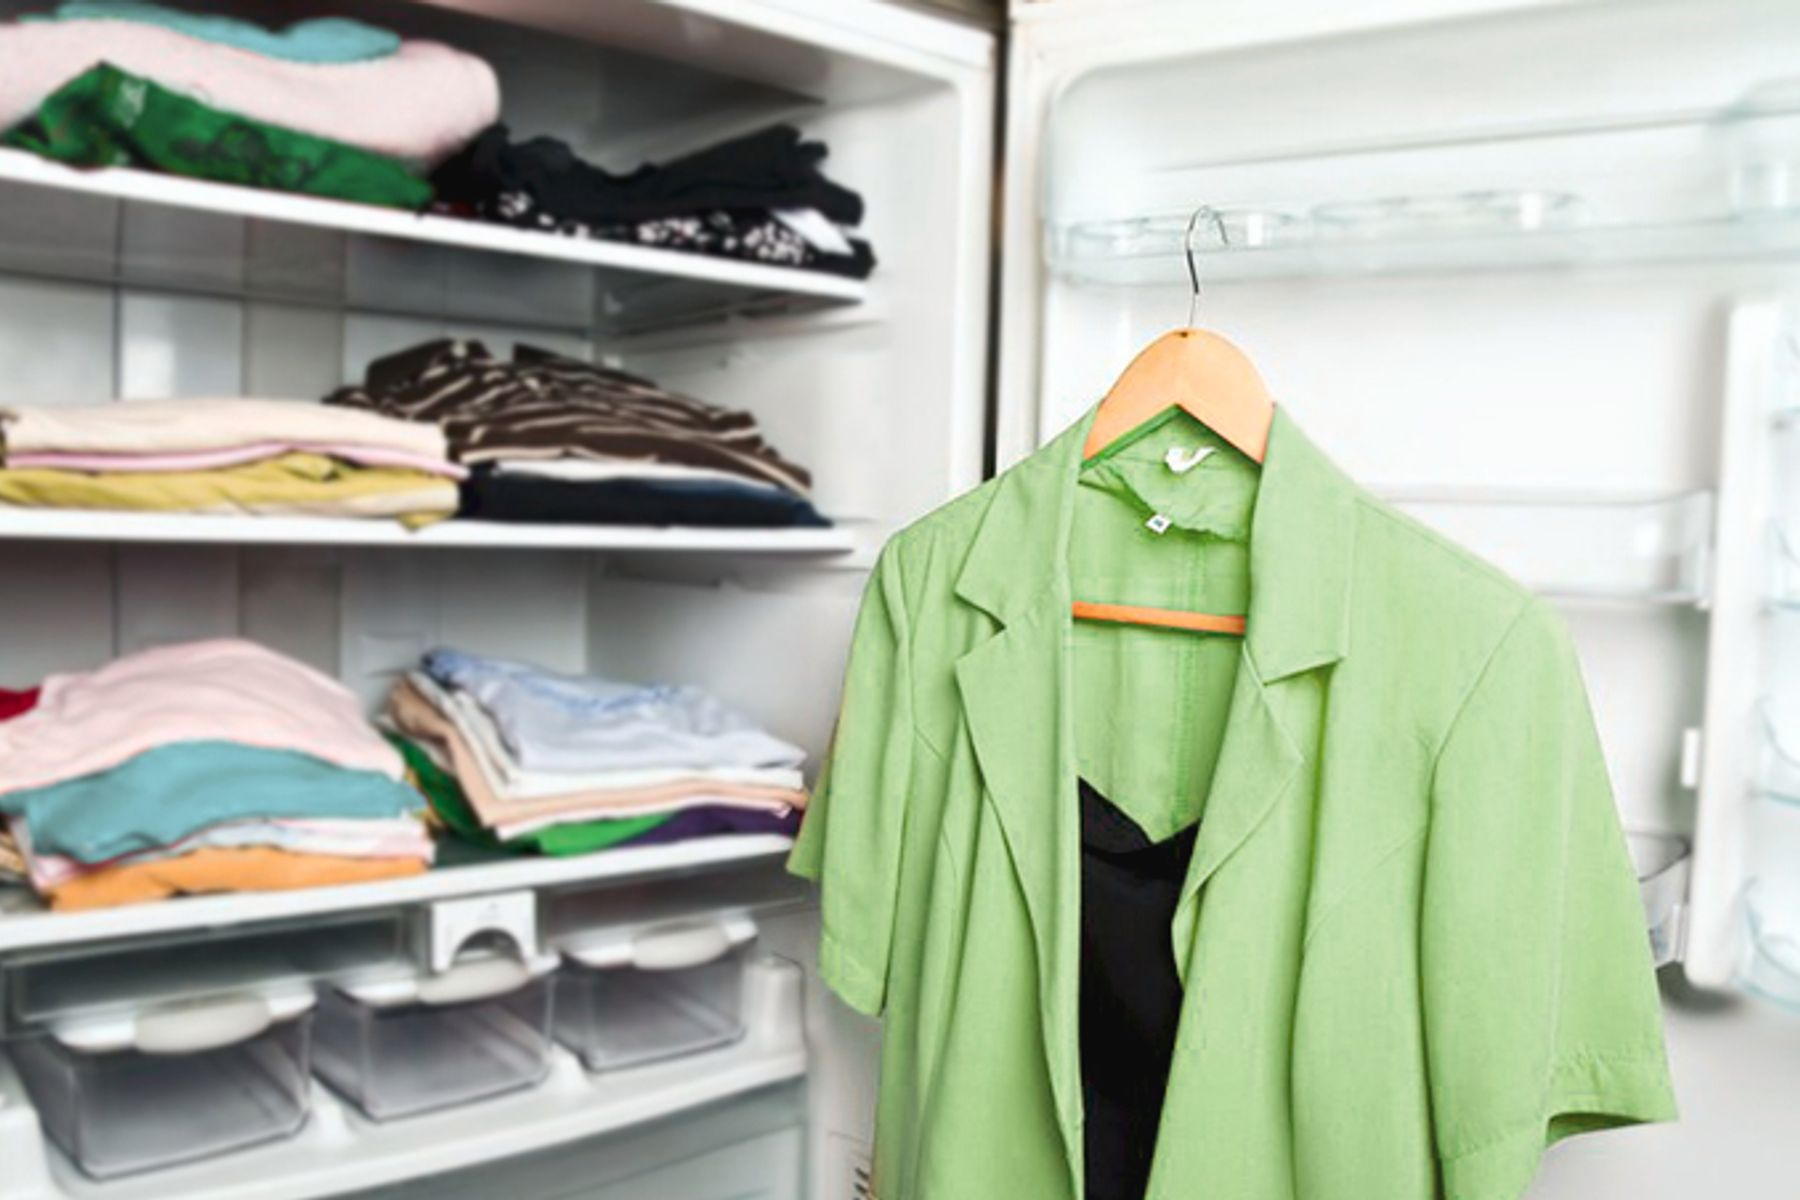 Image of organized clothes